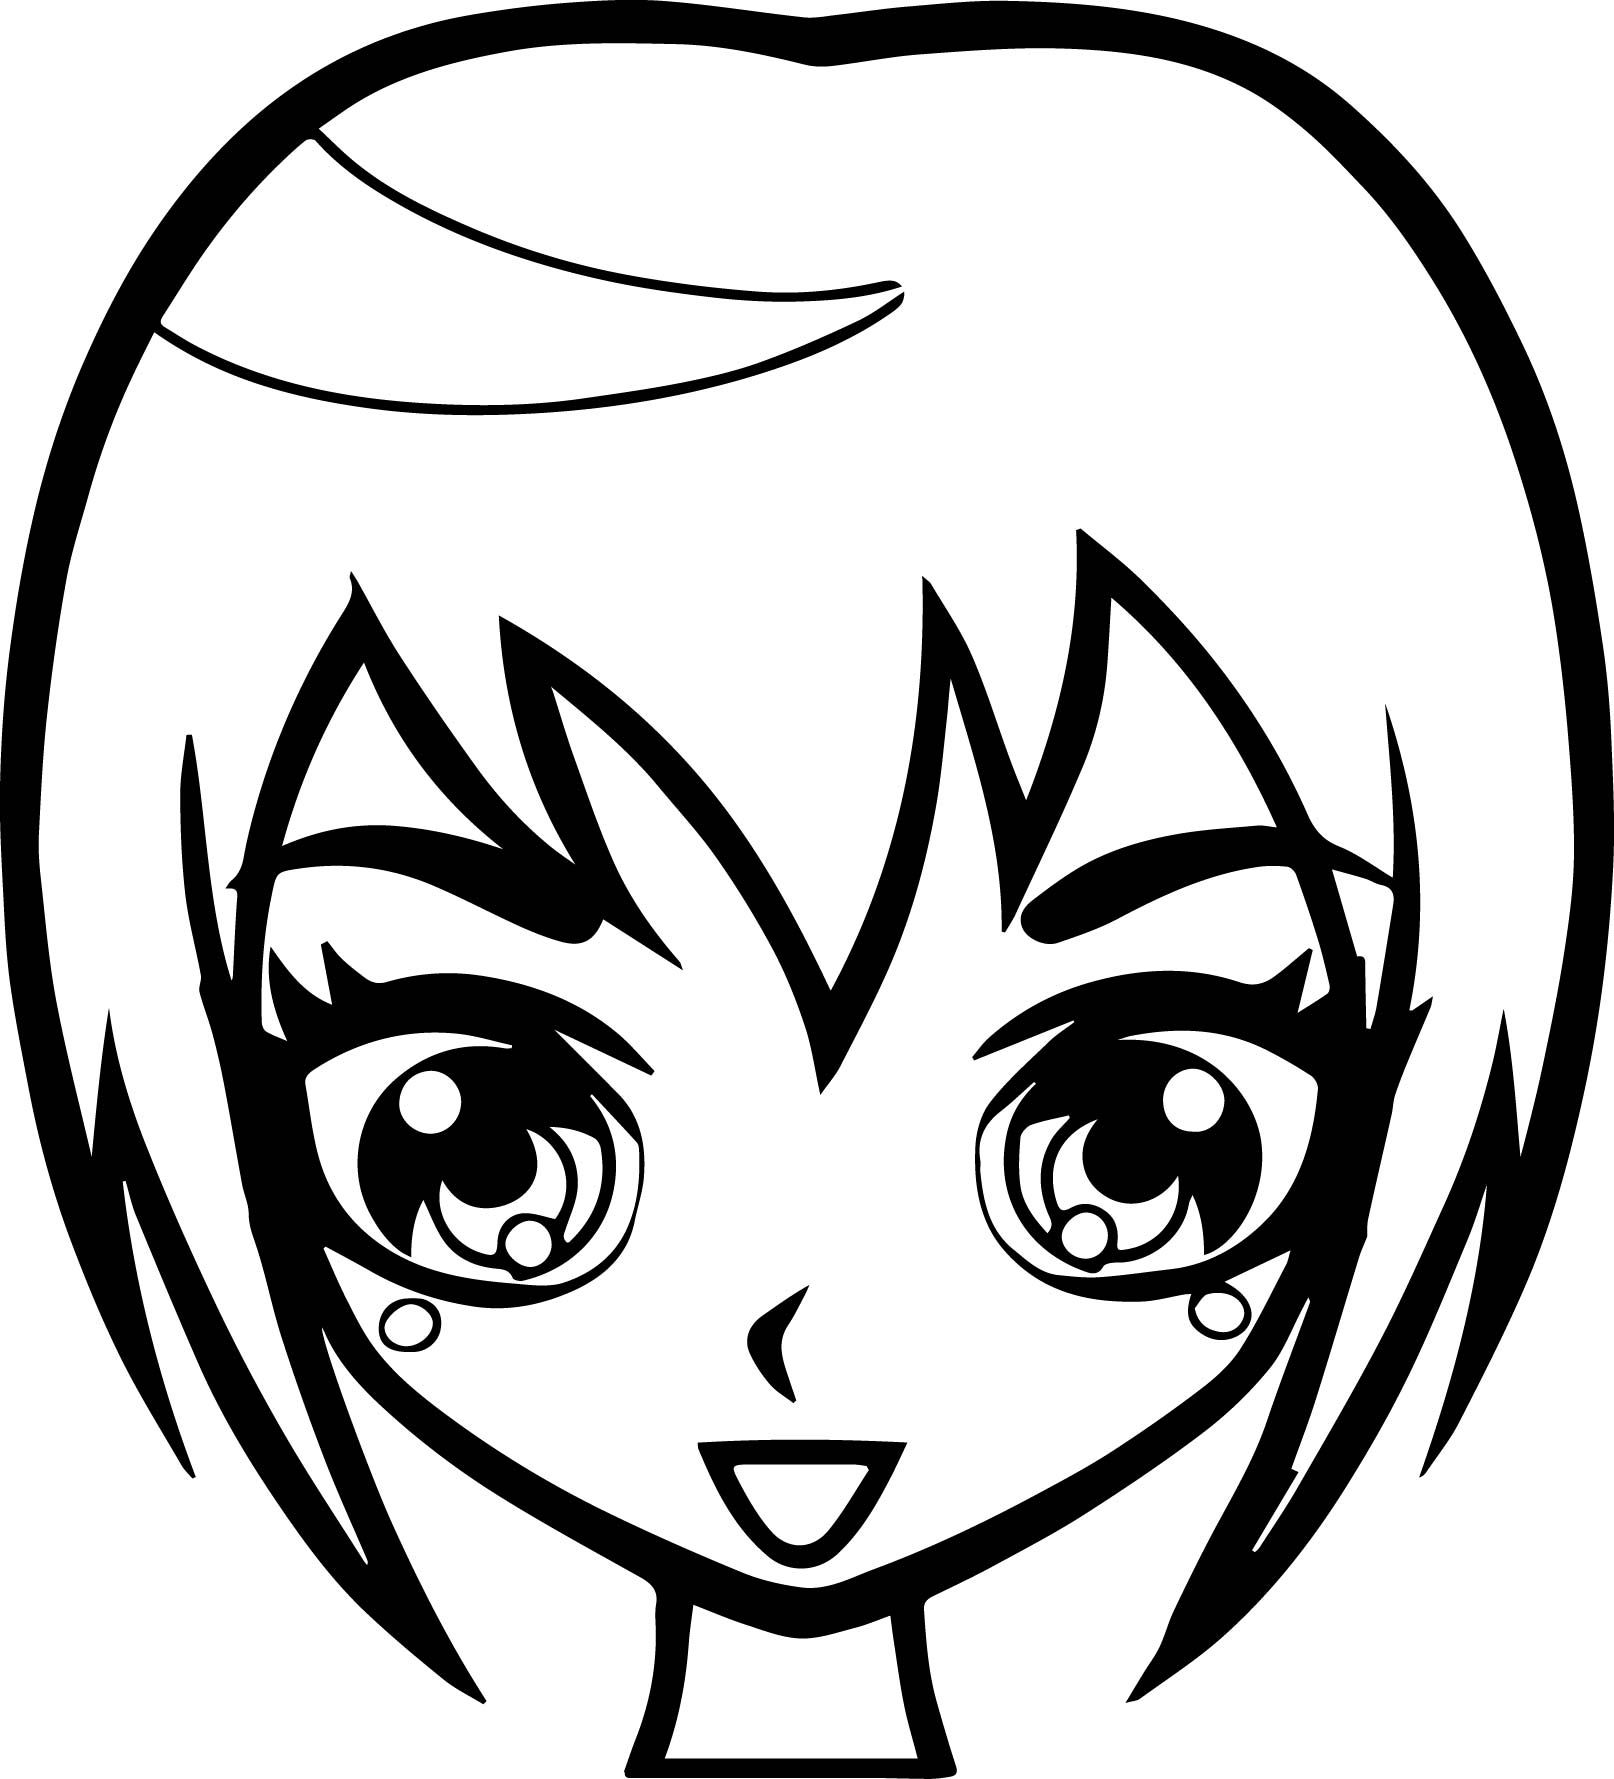 Awesome Manga Short Hair Girl Face Coloring Page Coloring Pages